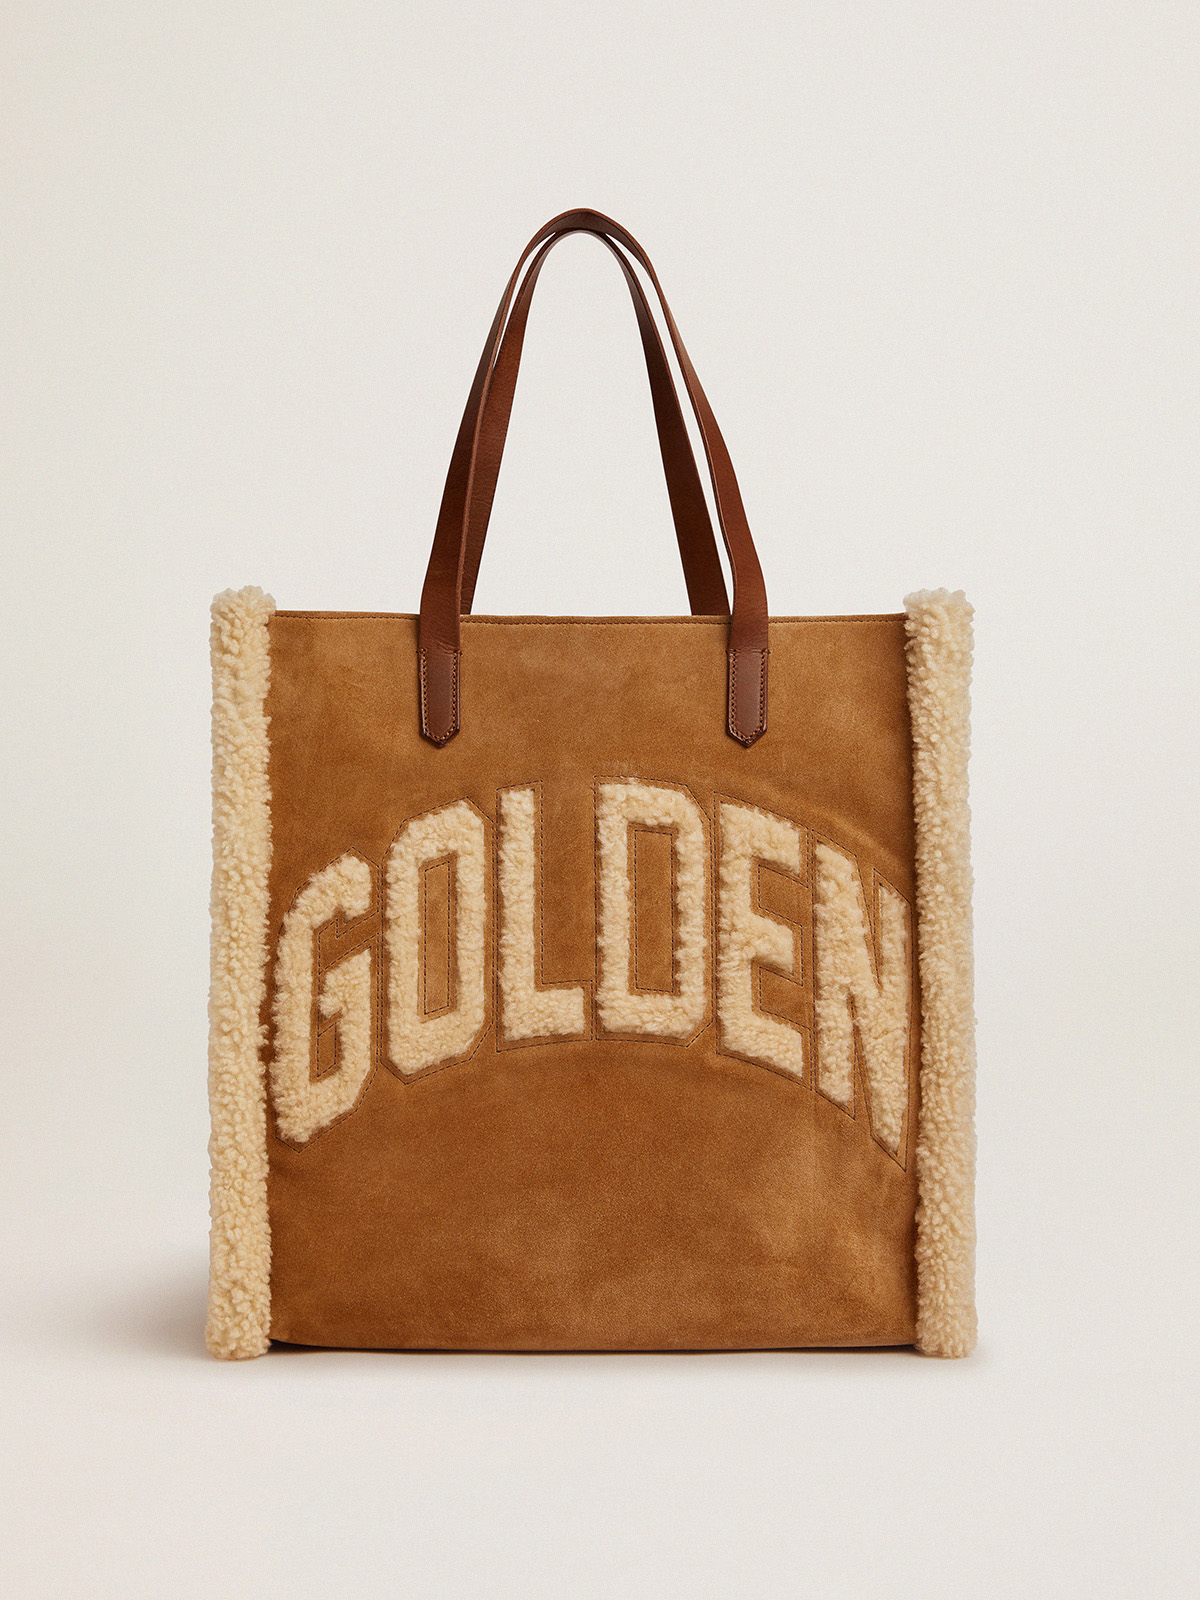 Golden Goose - North-South California Bag in suede leather with shearling in